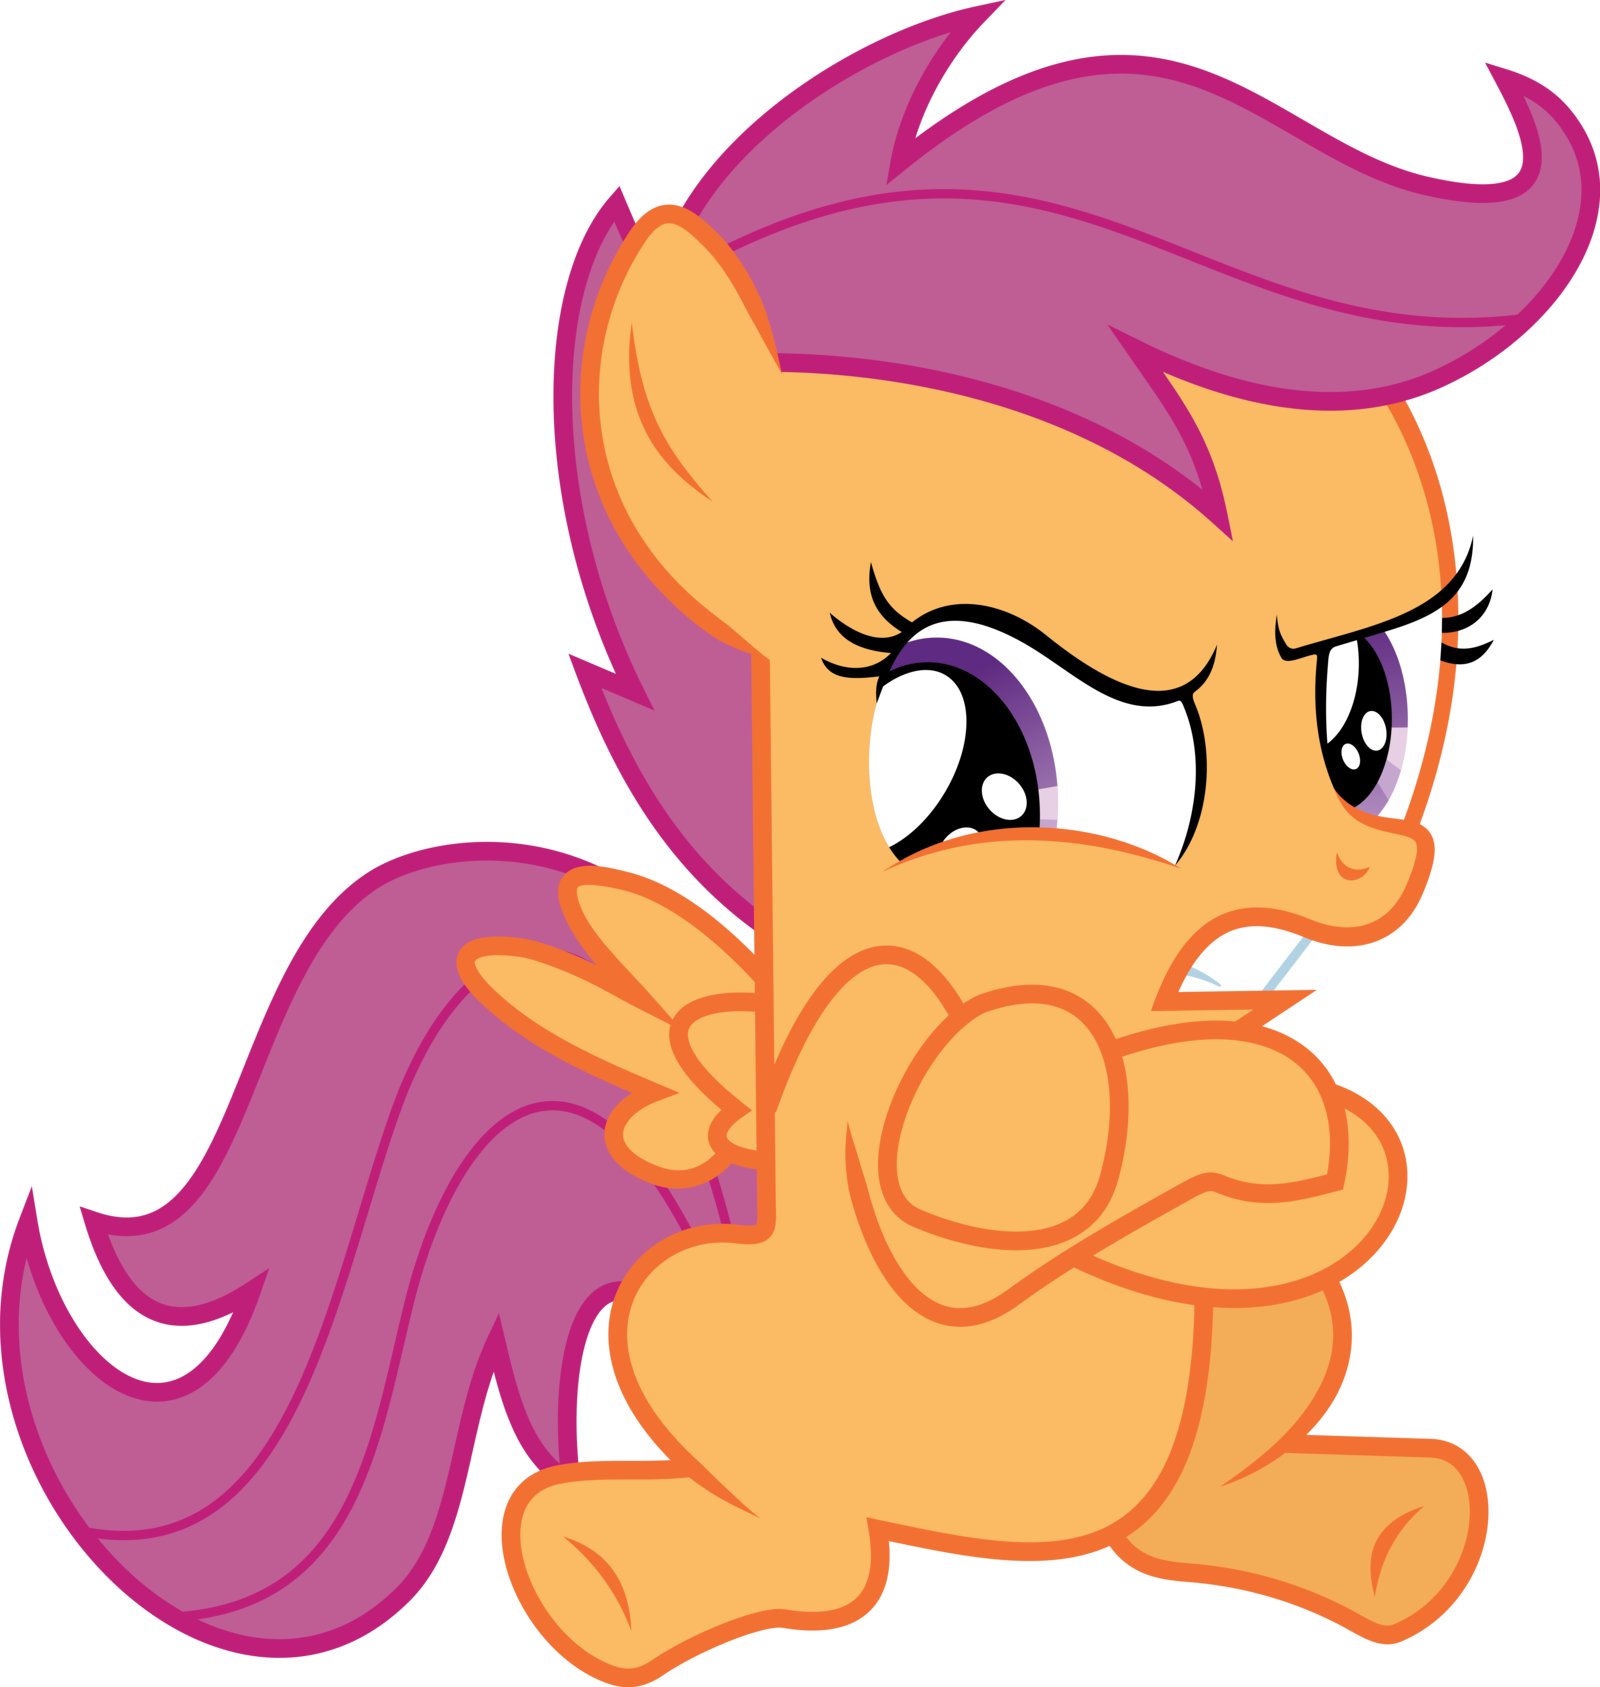 Grumpy Scootaloo My Little Pony Friendship Is Magic Know Your Meme We got our cutie marks! little pony friendship is magic